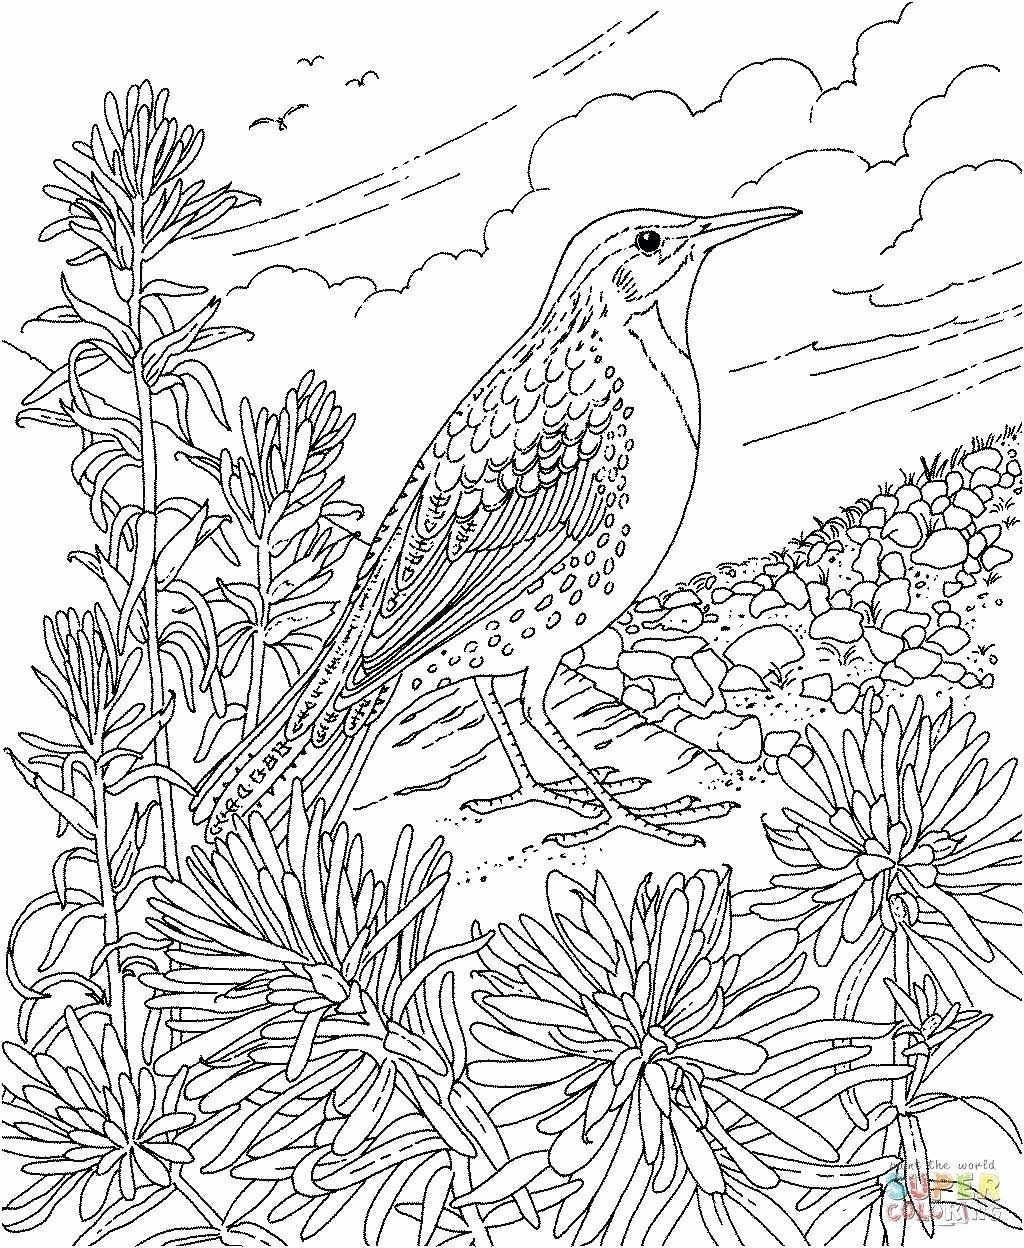 California State Bird Coloring Page Fresh Alabama State Flower Coloring Sheet Quorumsheet In 2020 Bird Coloring Pages Flower Coloring Pages Coloring Pages